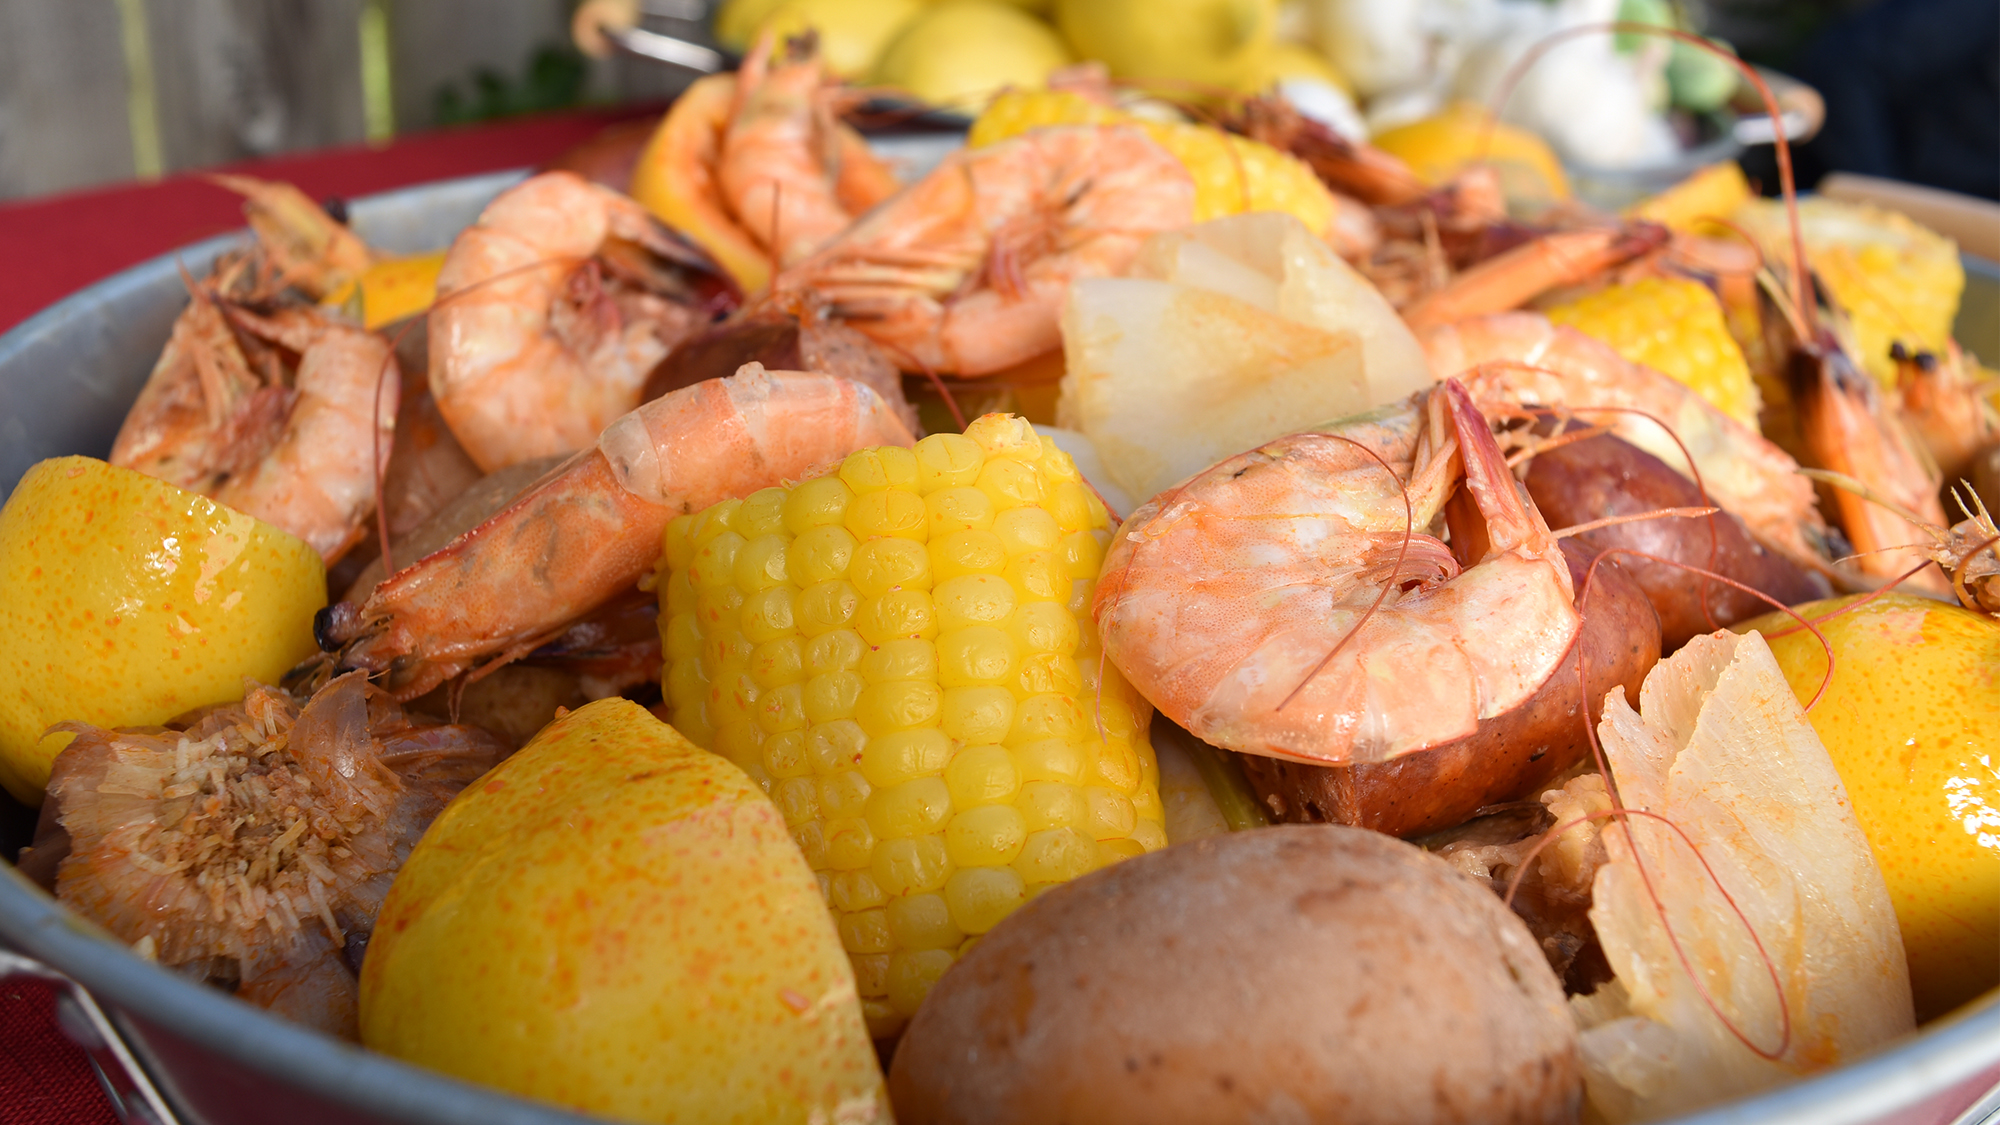 ZATA_6633_website-recipe_ShrimpBoil_2000x1125.jpg